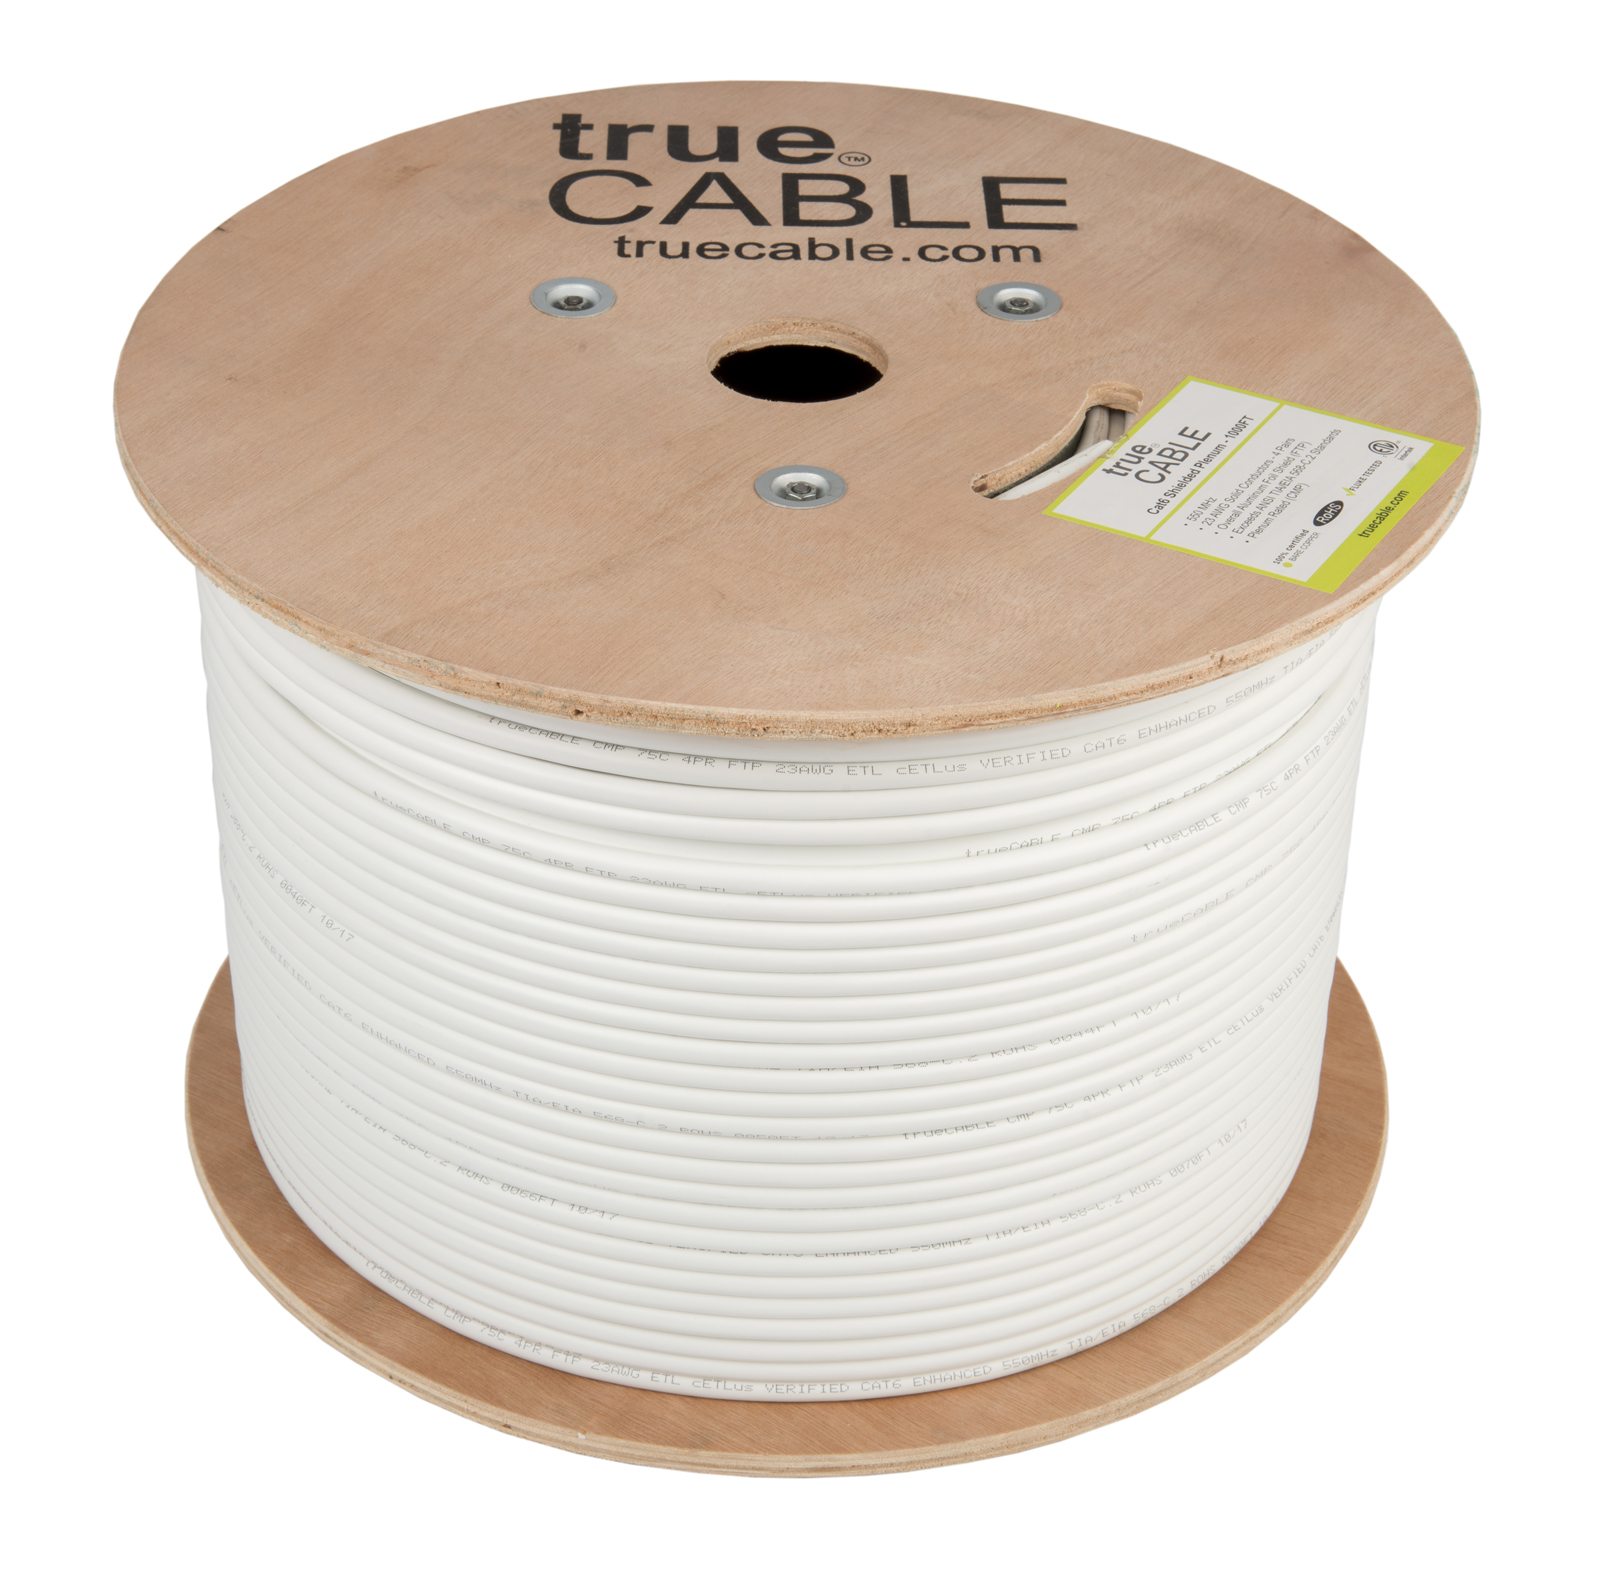 True Cable white cable reel photographed by Robintek Photography